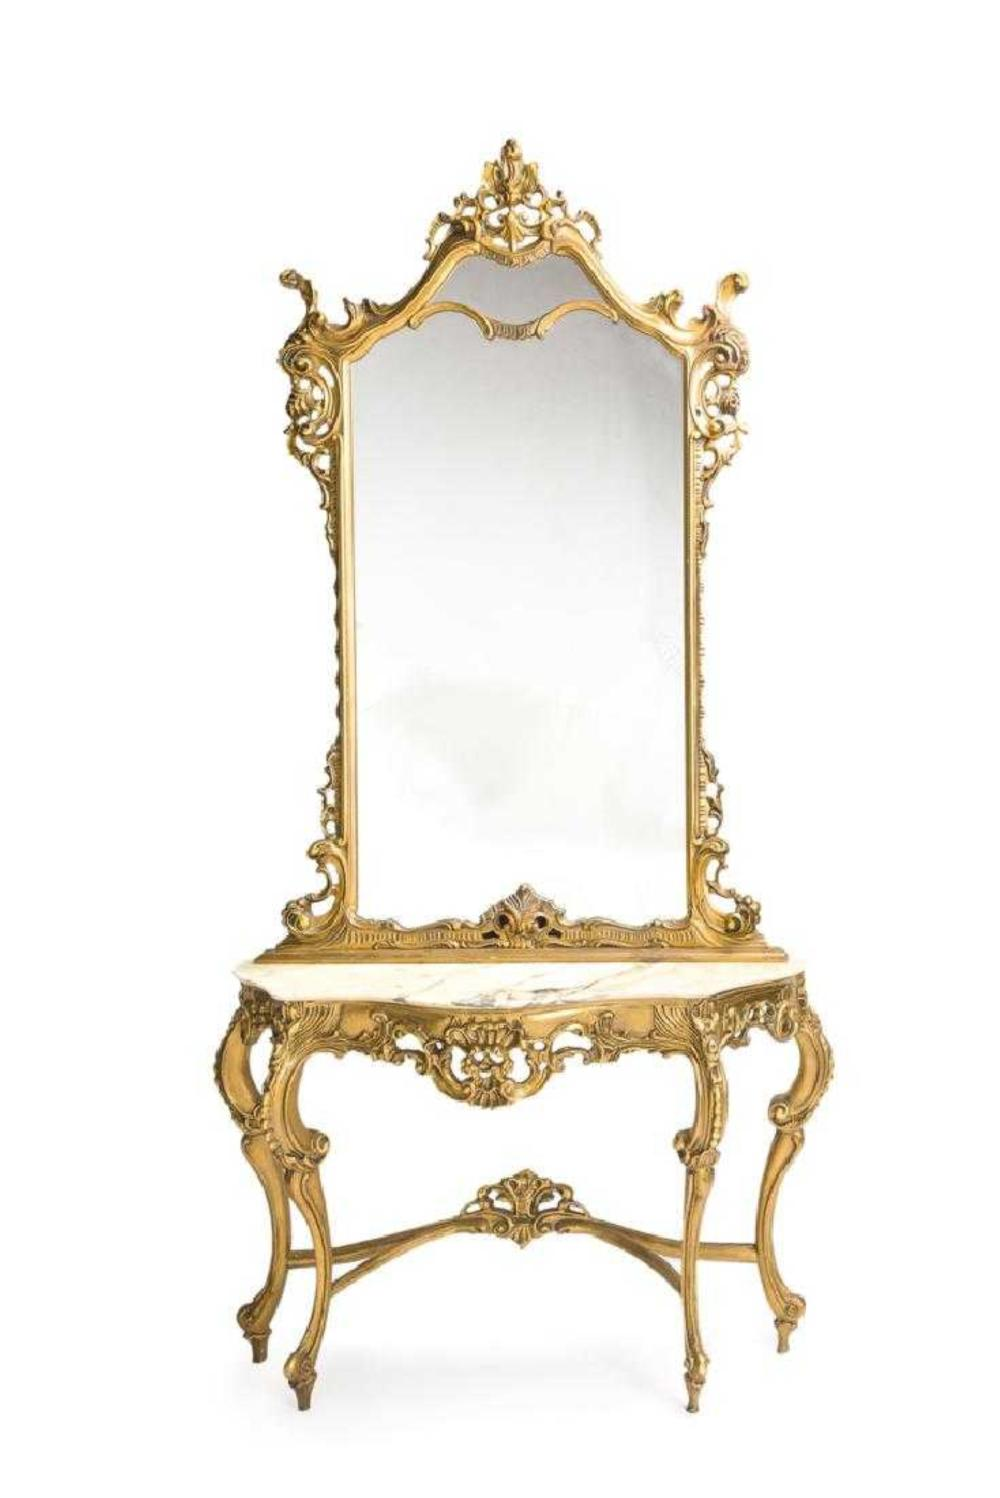 Late 19th C. Italian Giltwood & Marble Console with Vanity Mirror